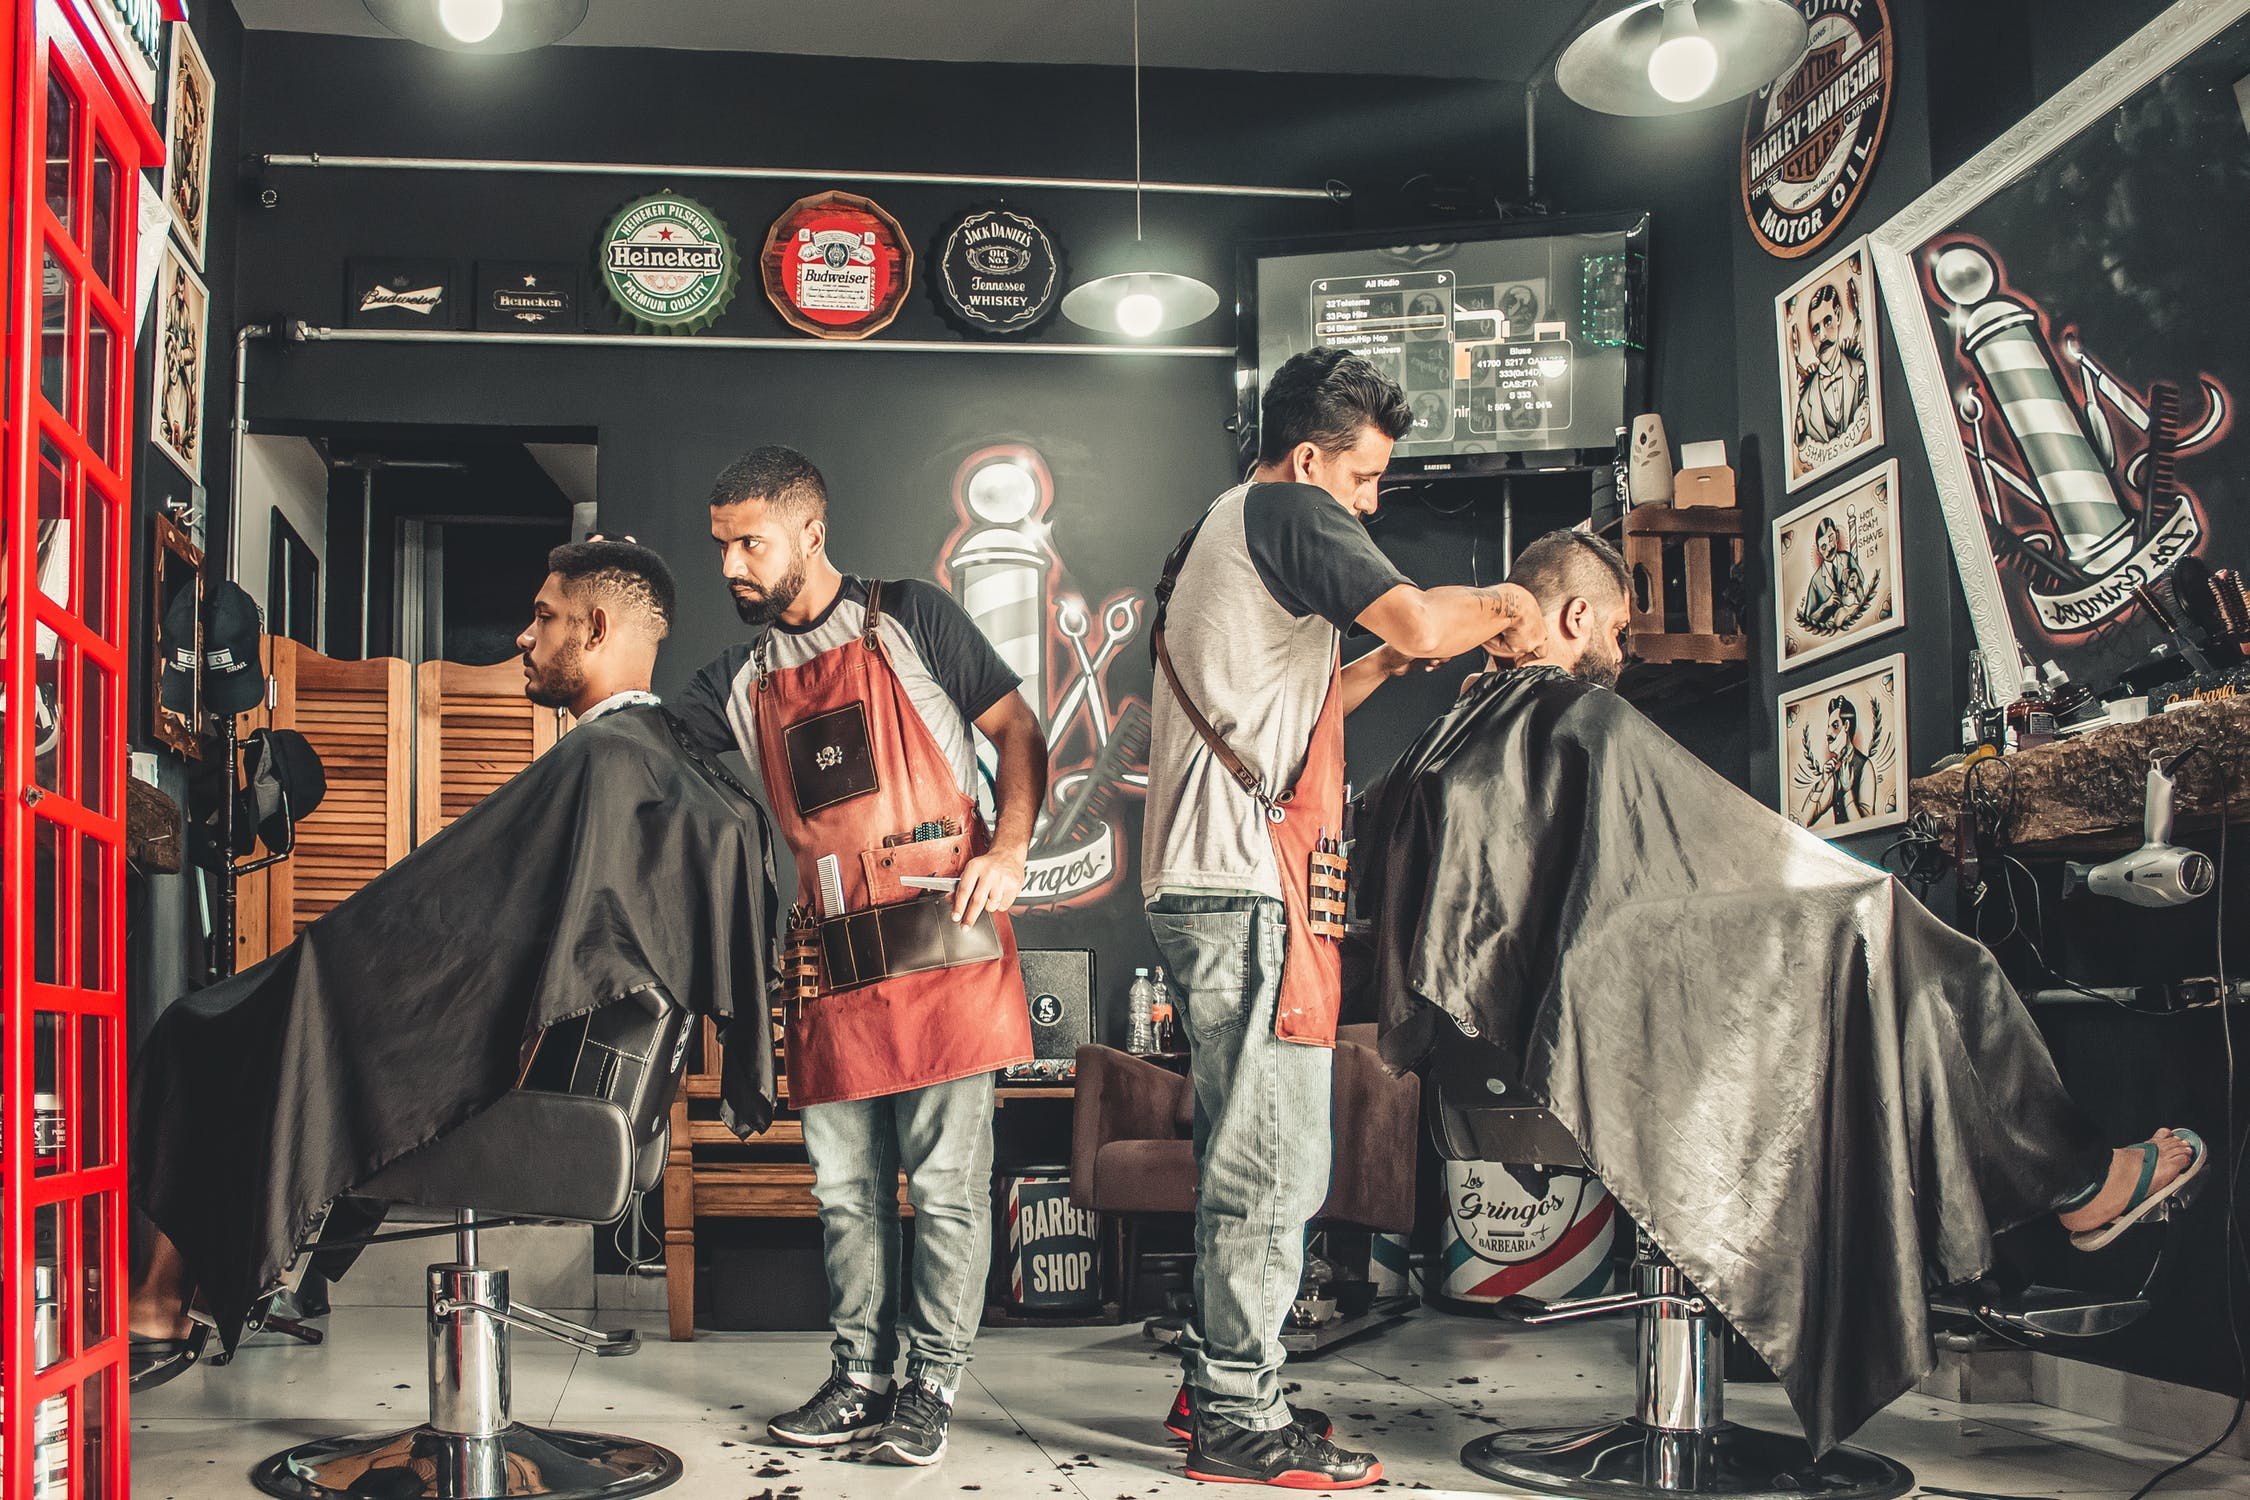 Looking for work at a hairdressing salon | Source: Pexels